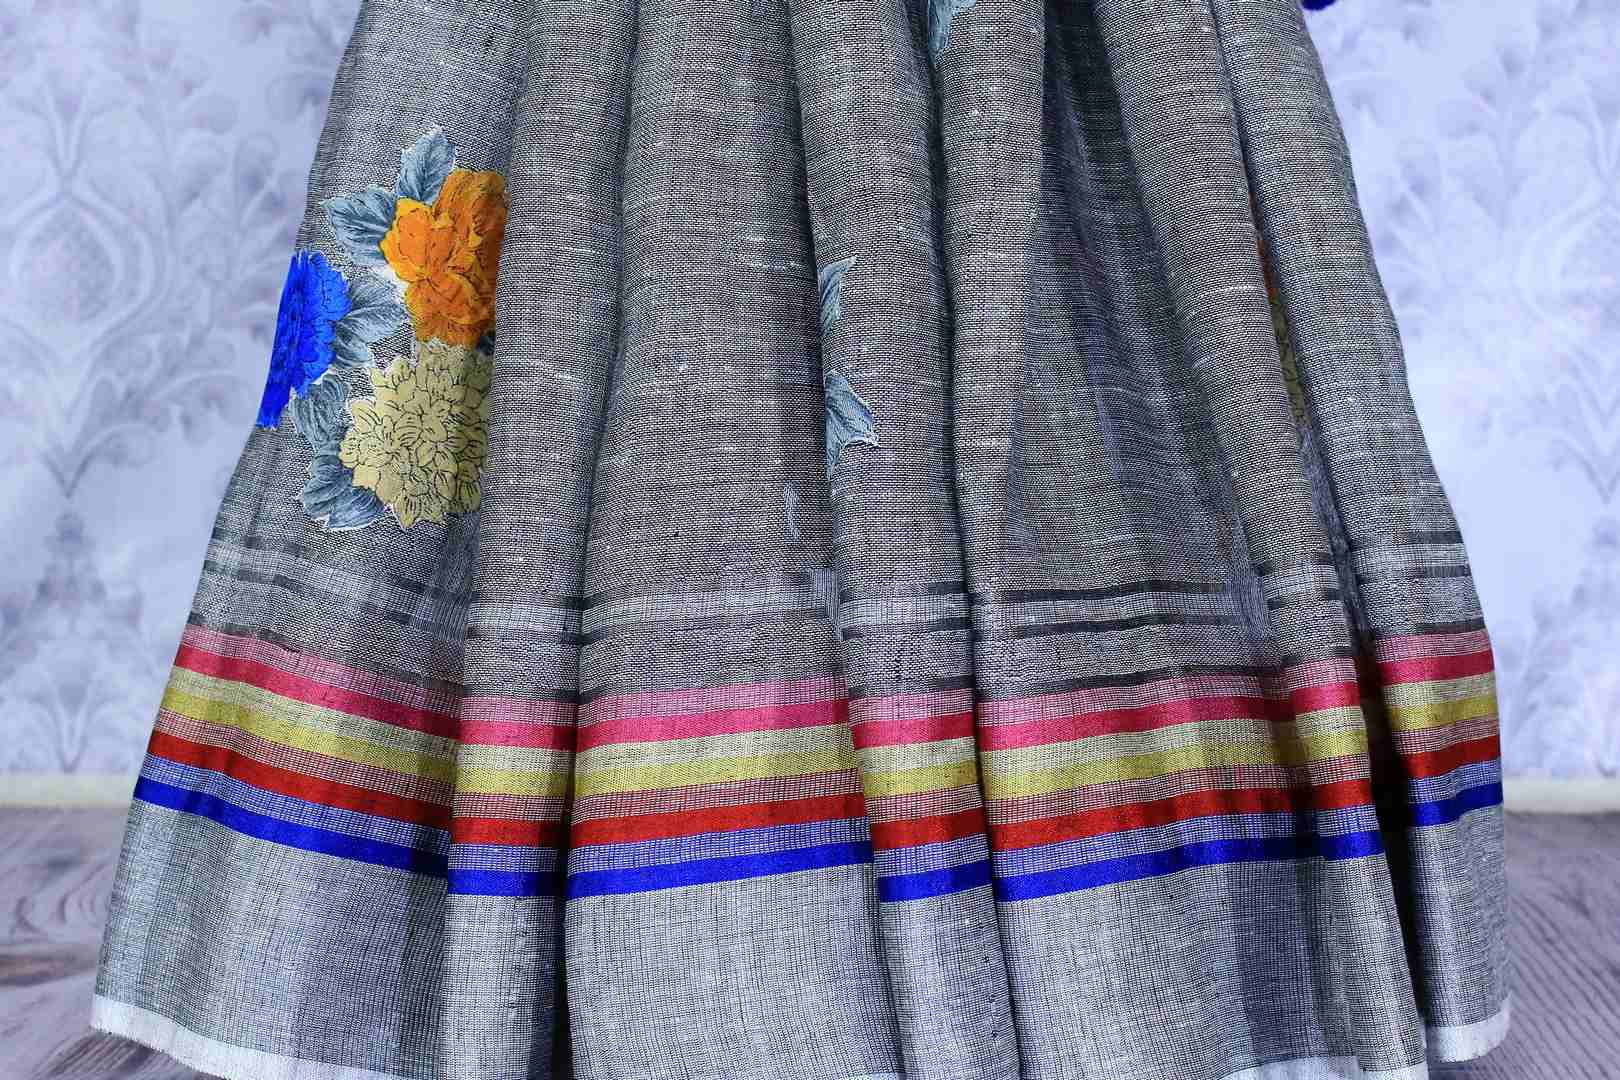 Buy stylish grey linen saree online in USA with floral applique work. The saree is an alluring choice for summer parties and special occasions. Buy more such Indian woven saris in USA at Pure Elegance exclusive fashion store or shop online at the comfort of your home.-pleats